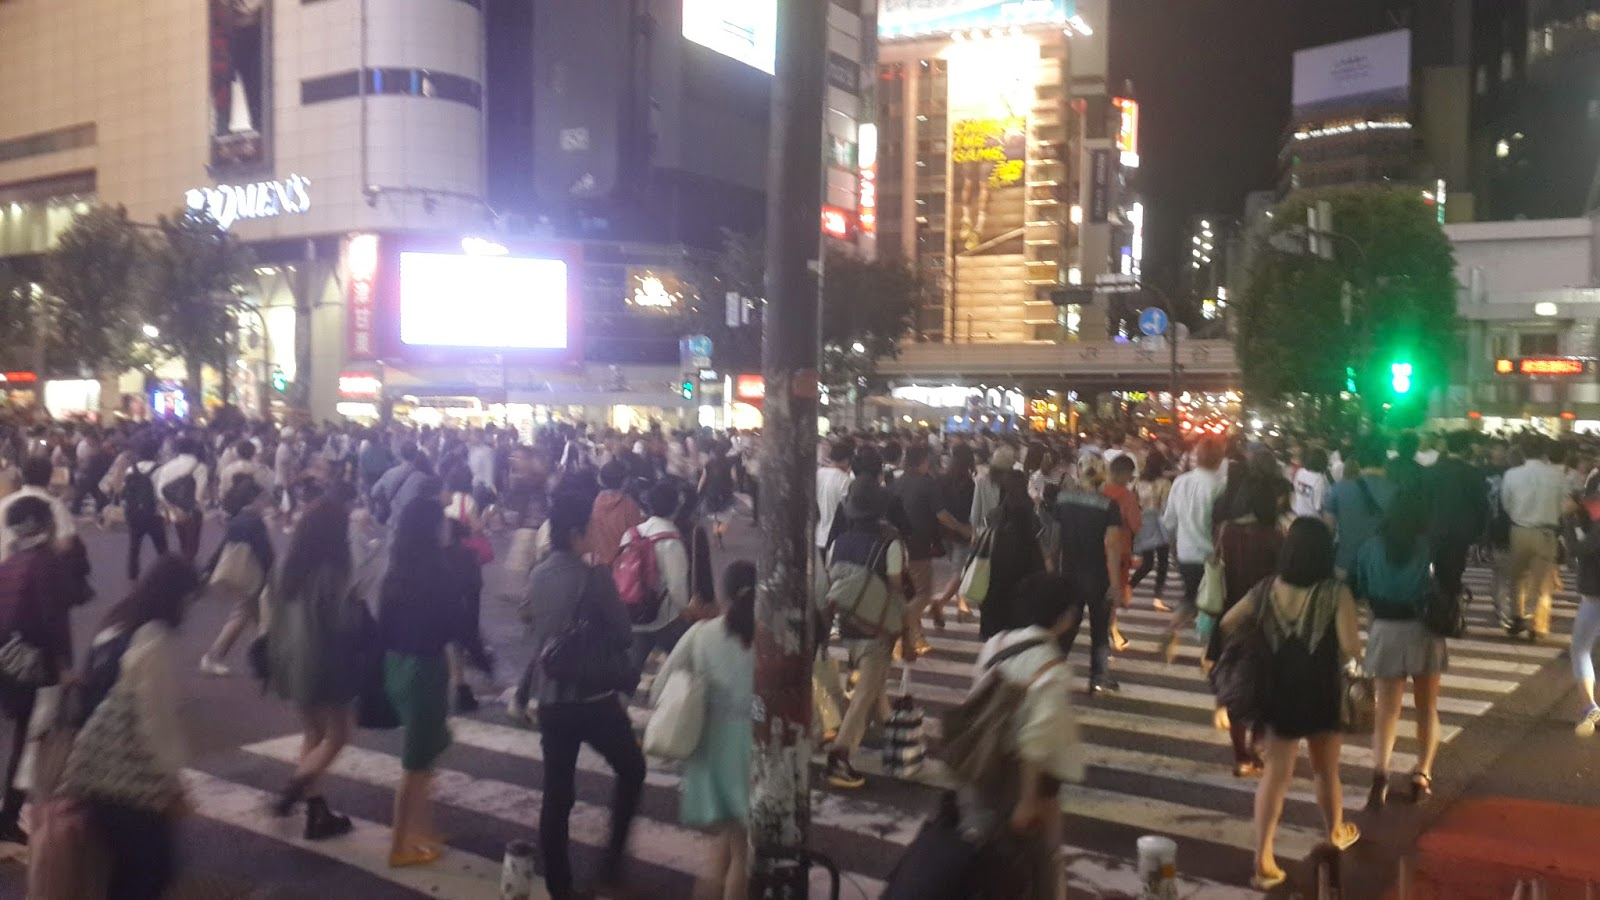 Shibuya, world's largest pedestrian crossing